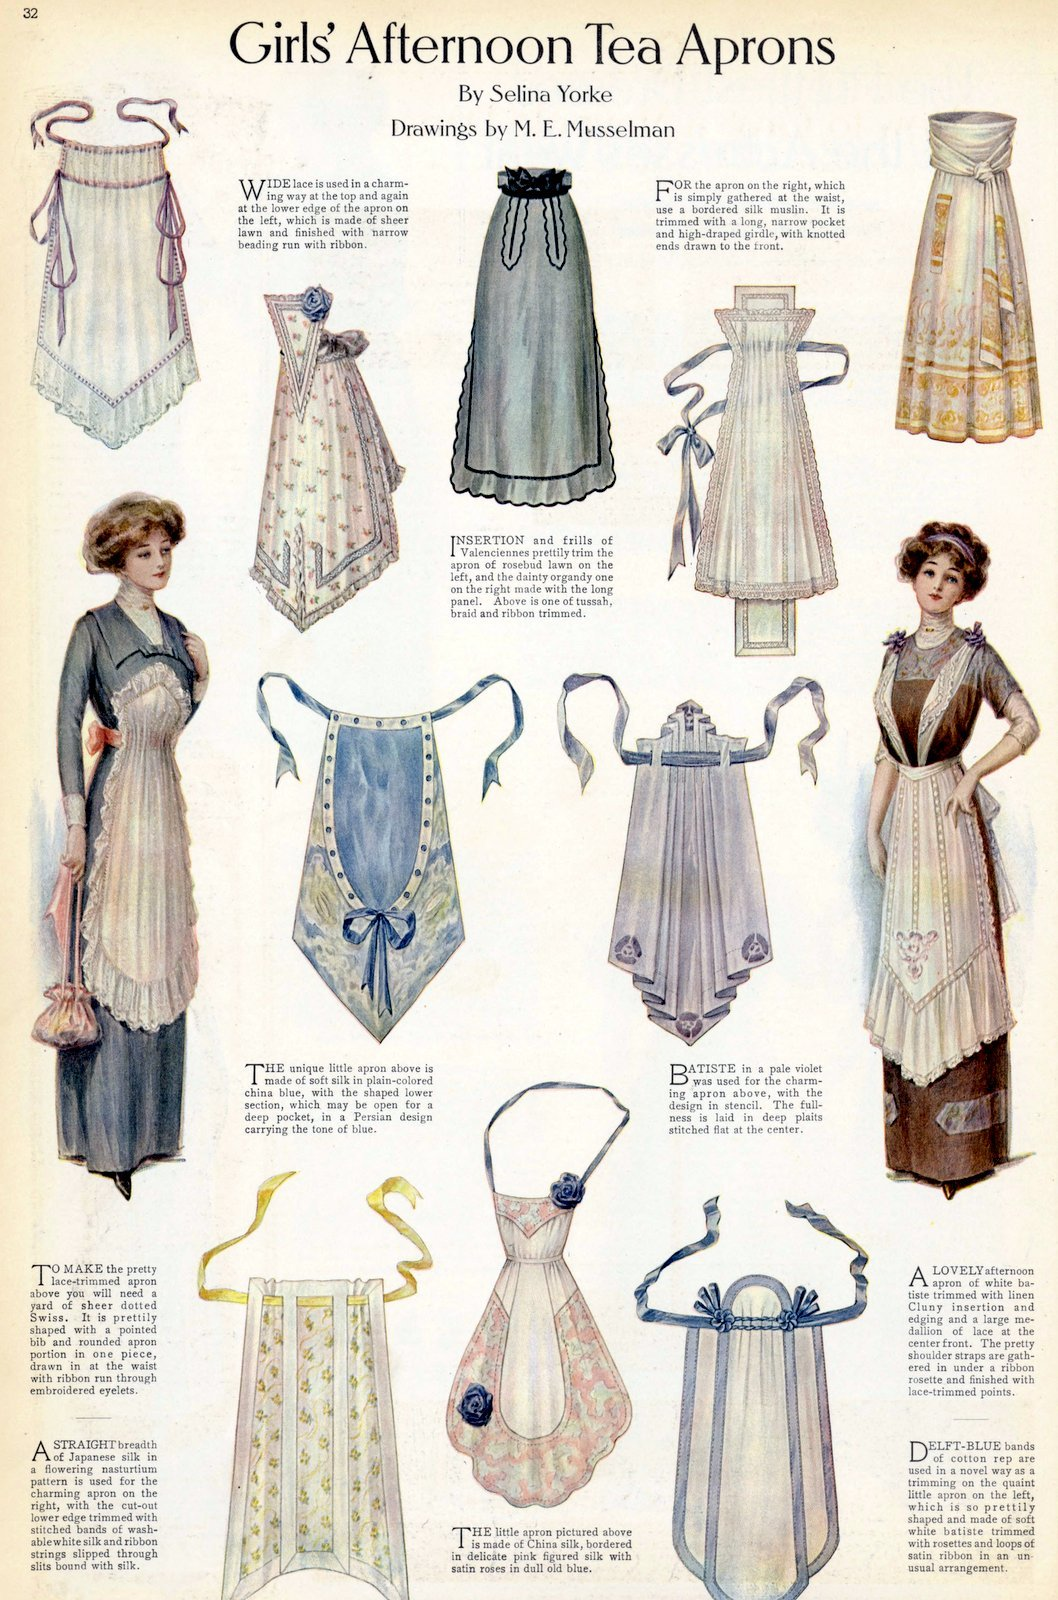 Beautiful vintage aprons from 1911